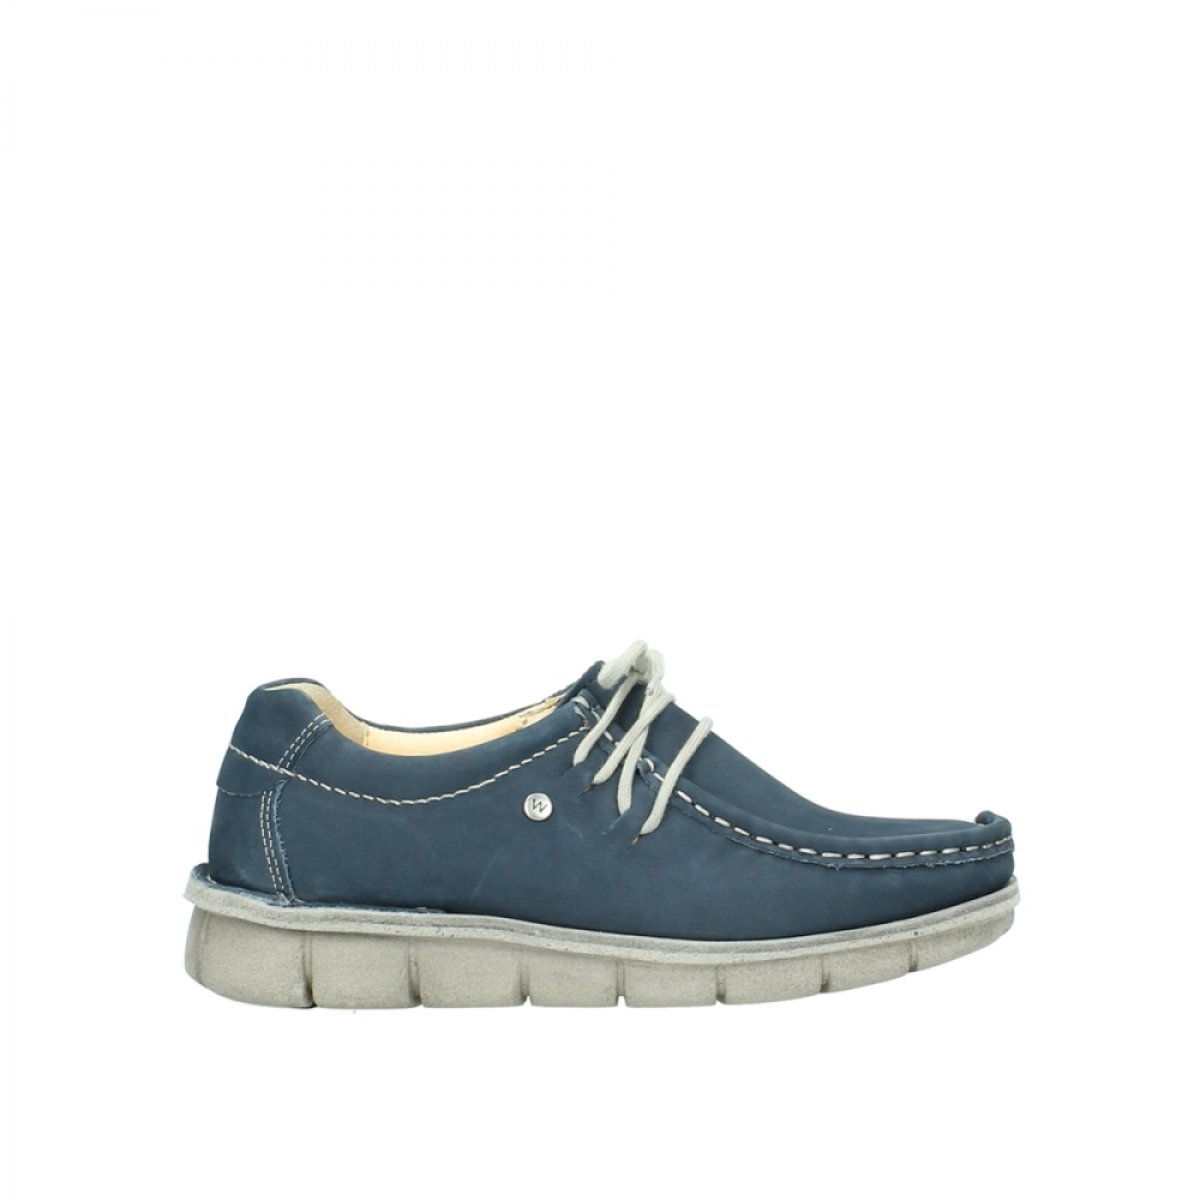 Wolky 37 Comfort Lace up Shoes Dutch B00WDWGH3C 37 Wolky M EU|10870 Blue Nubuck ae8f61